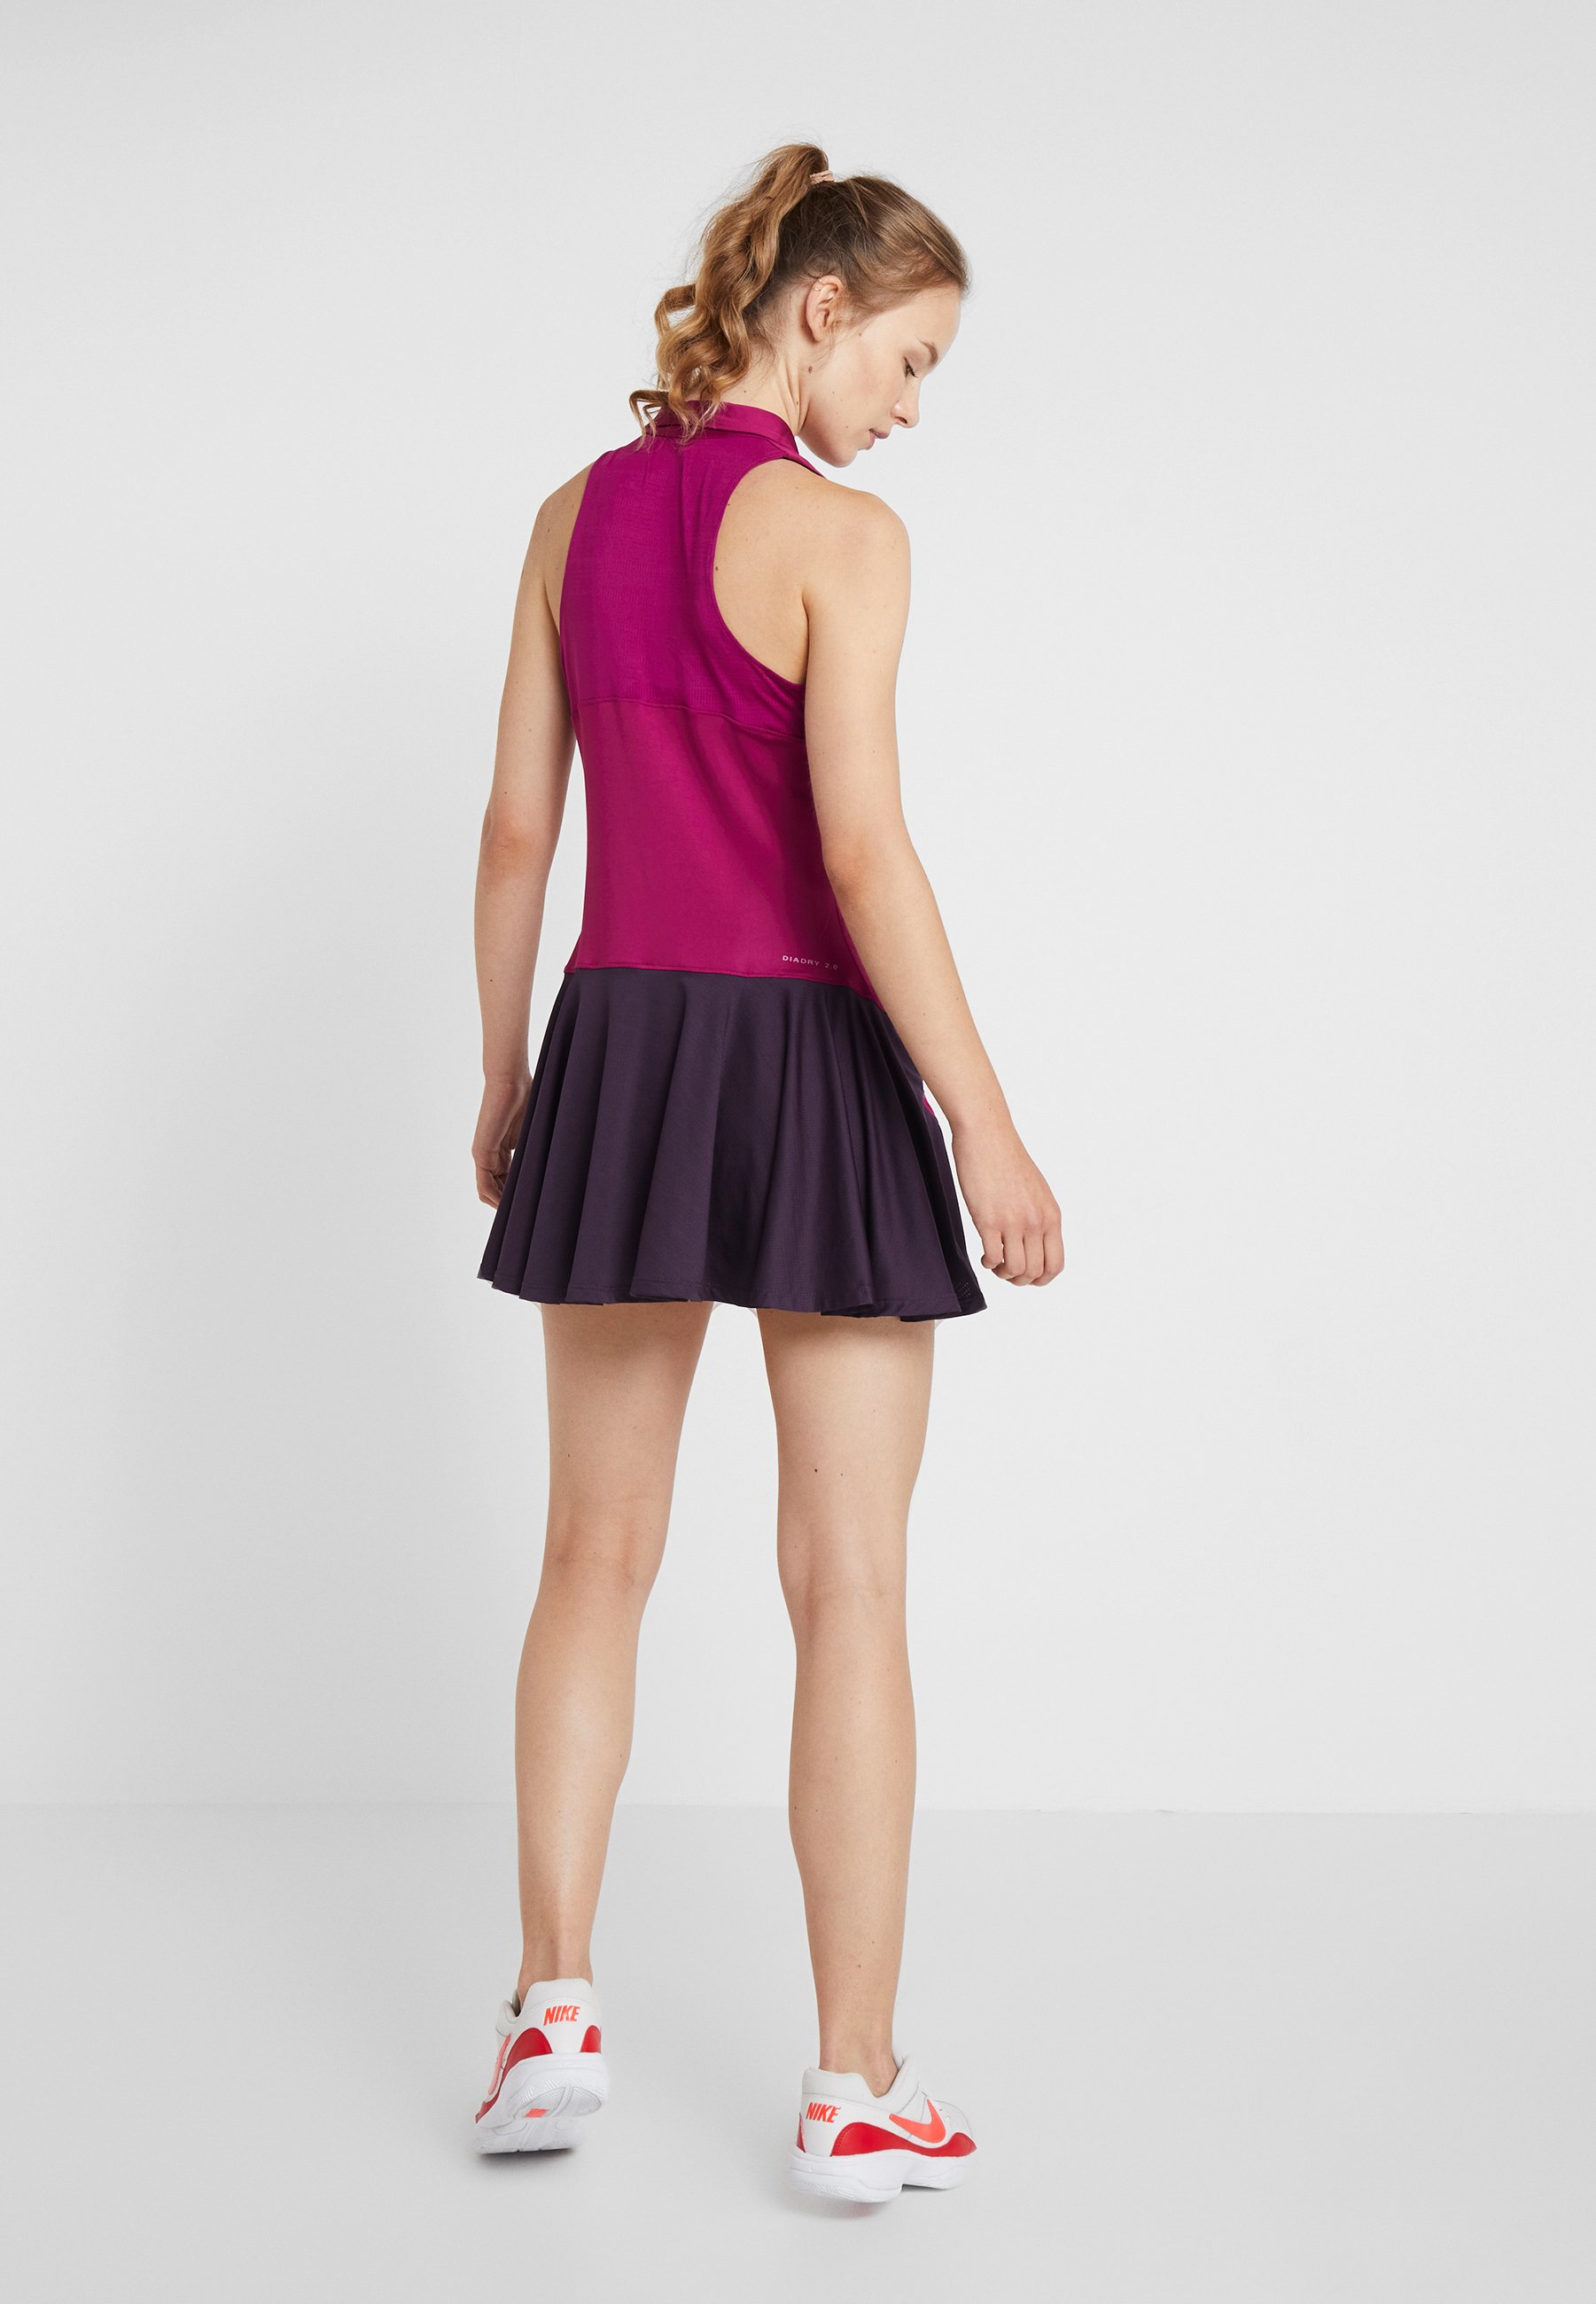 Dress ClayRobe Sport De Violet Boysenberry Diadora PnwXZN80Ok